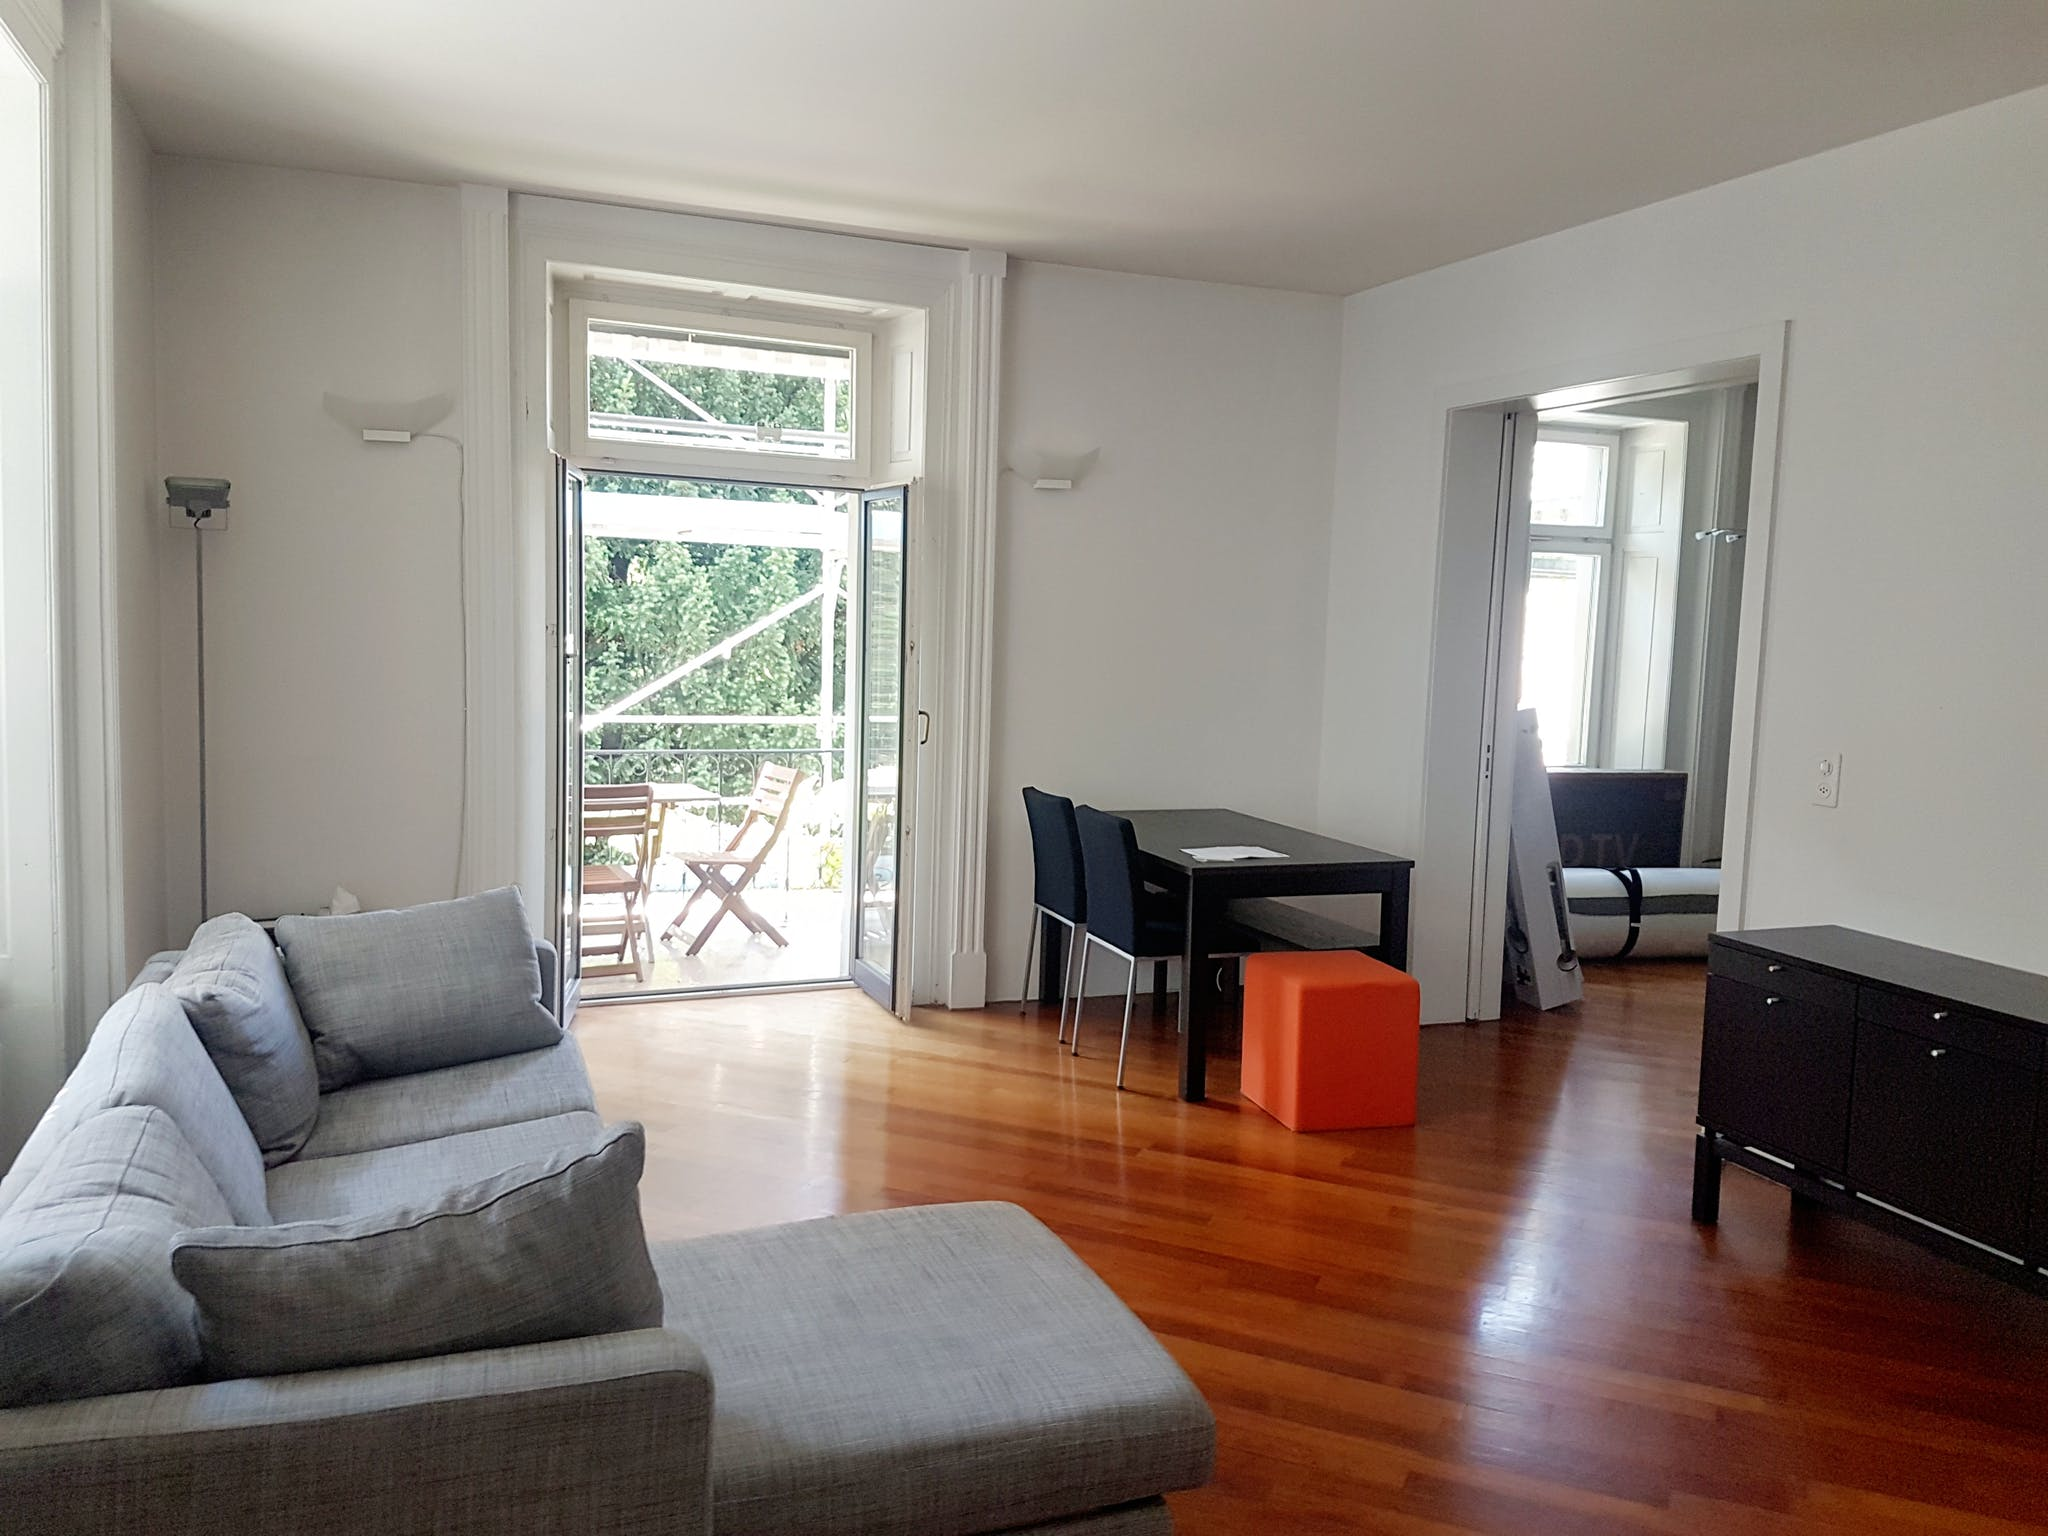 Holiday apartment Zürich, Neptunstrasse, Holiday apartment for rent